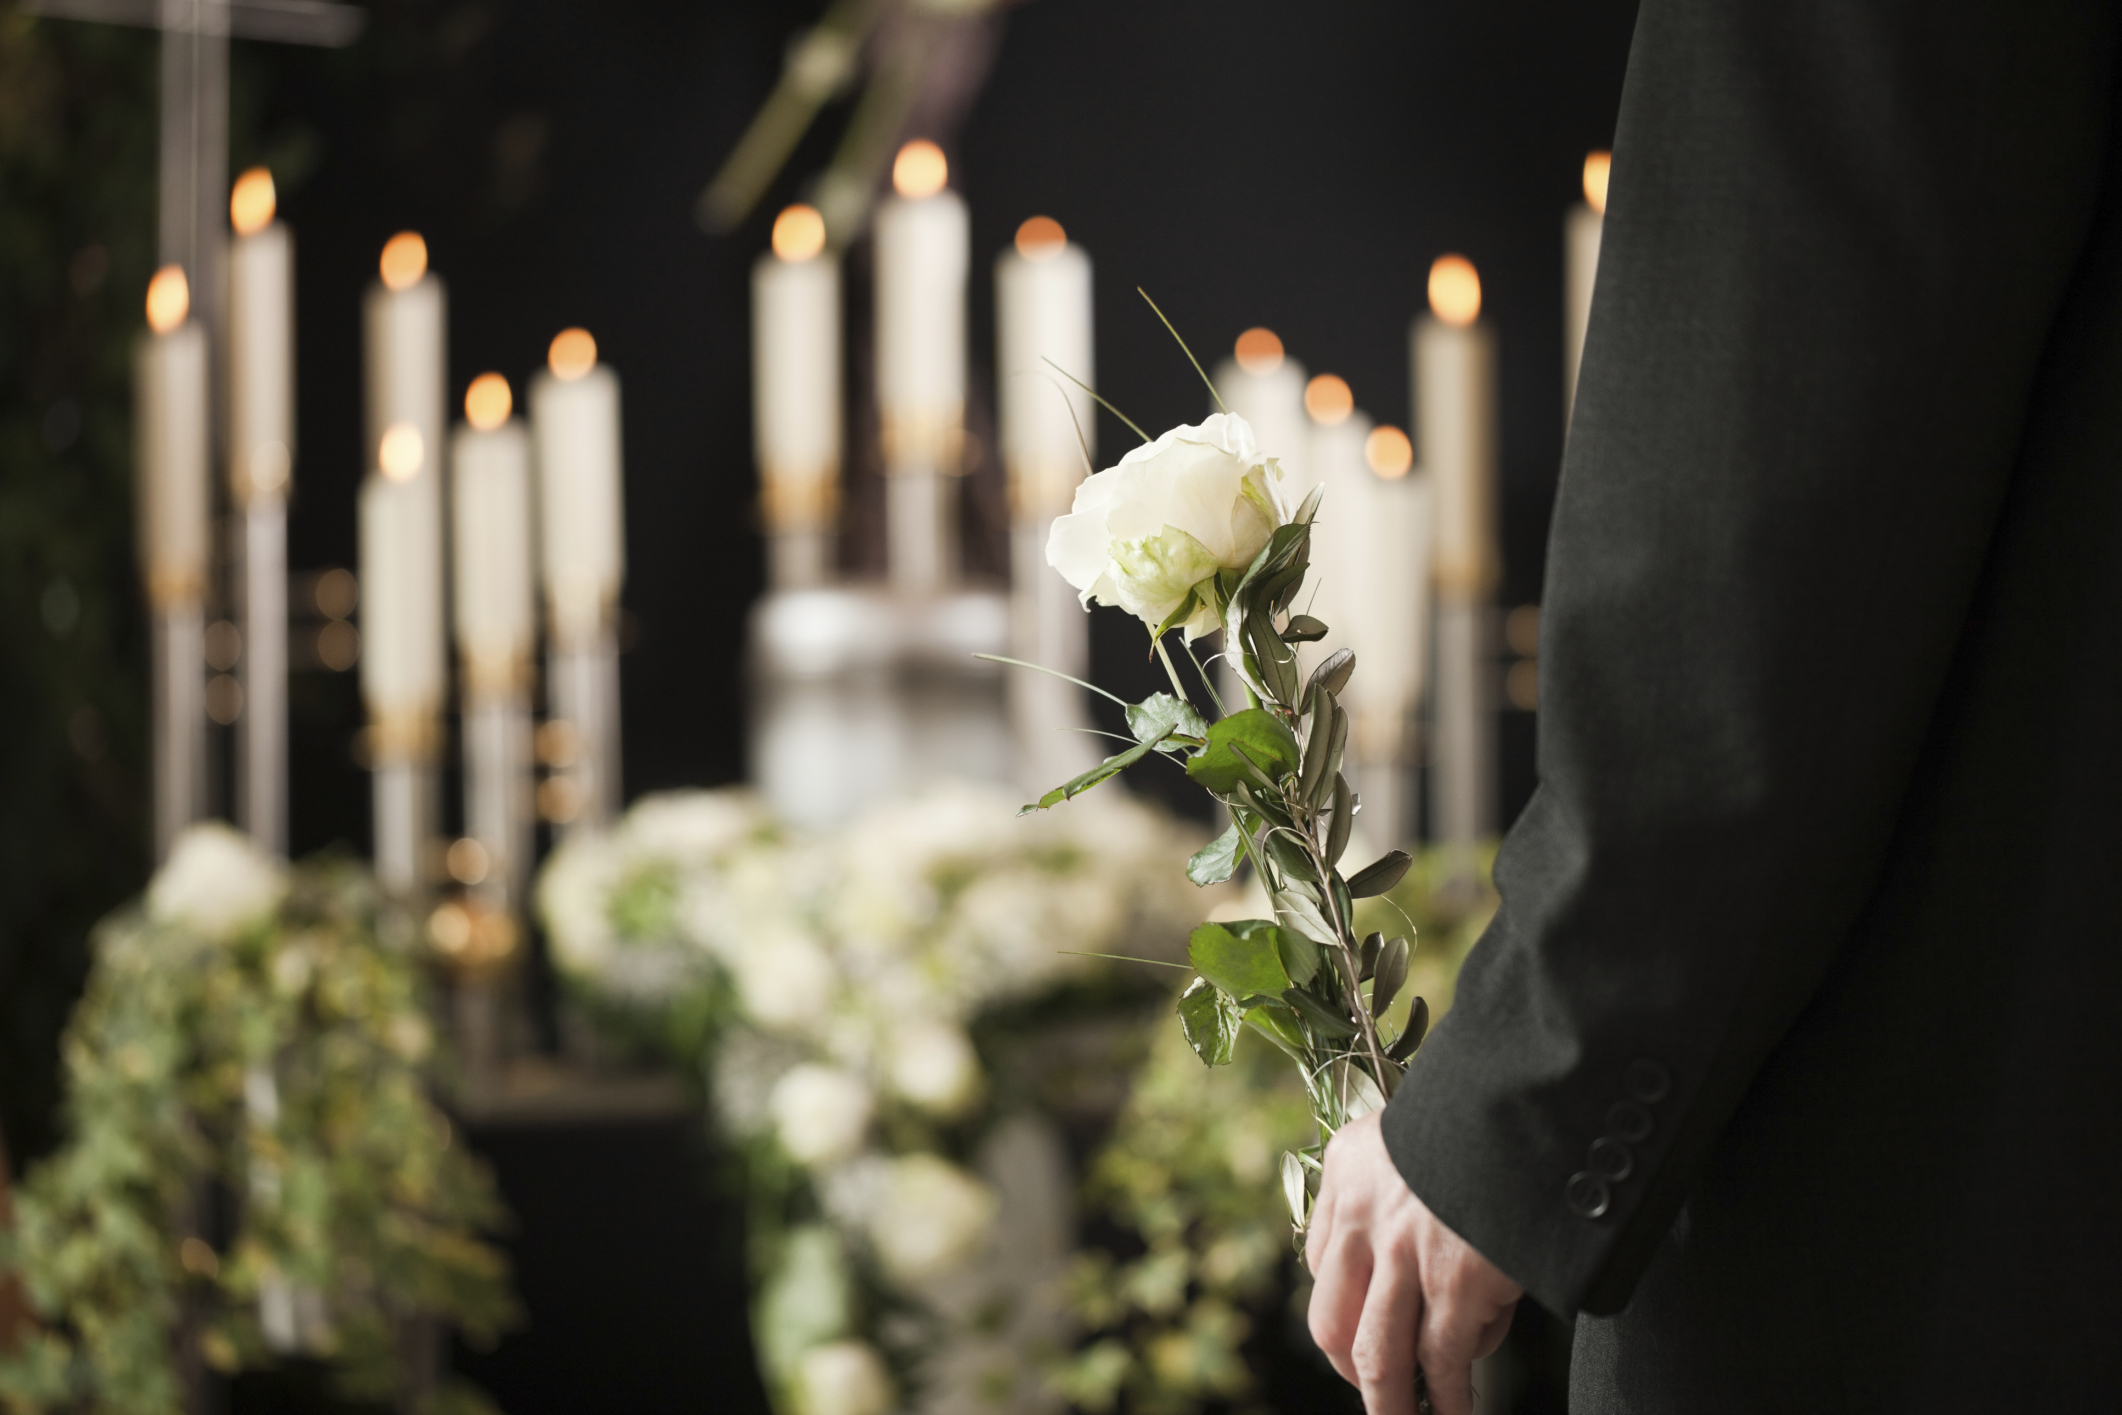 Seventh Day Adventist Funeral Customs with Dos and Don'ts